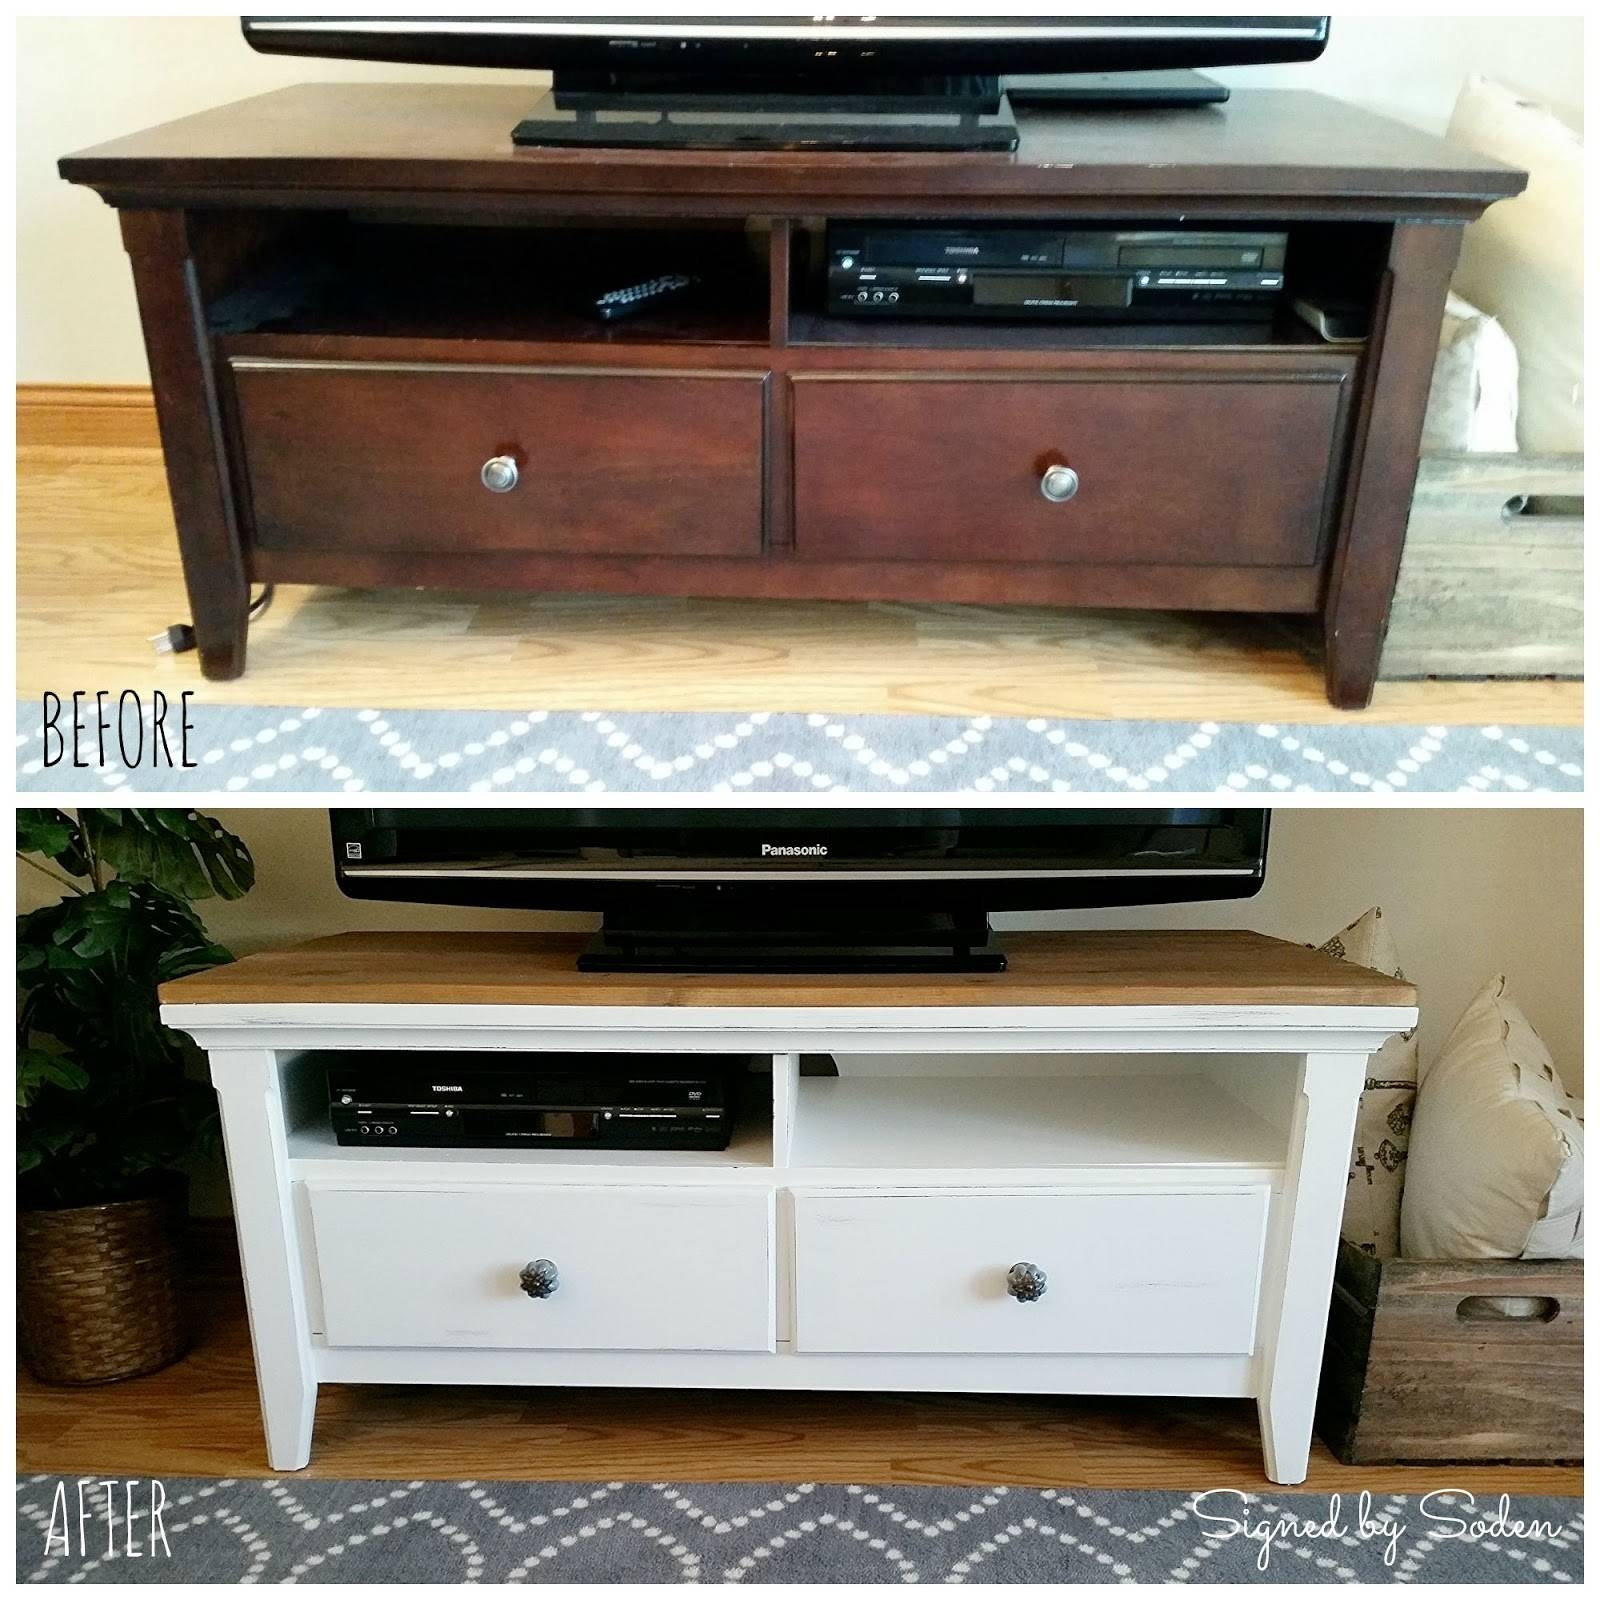 Diy: Rustic Coffee Table And Tv Stand Makeover - Signedsoden pertaining to Rustic Coffee Table and Tv Stand (Image 9 of 15)